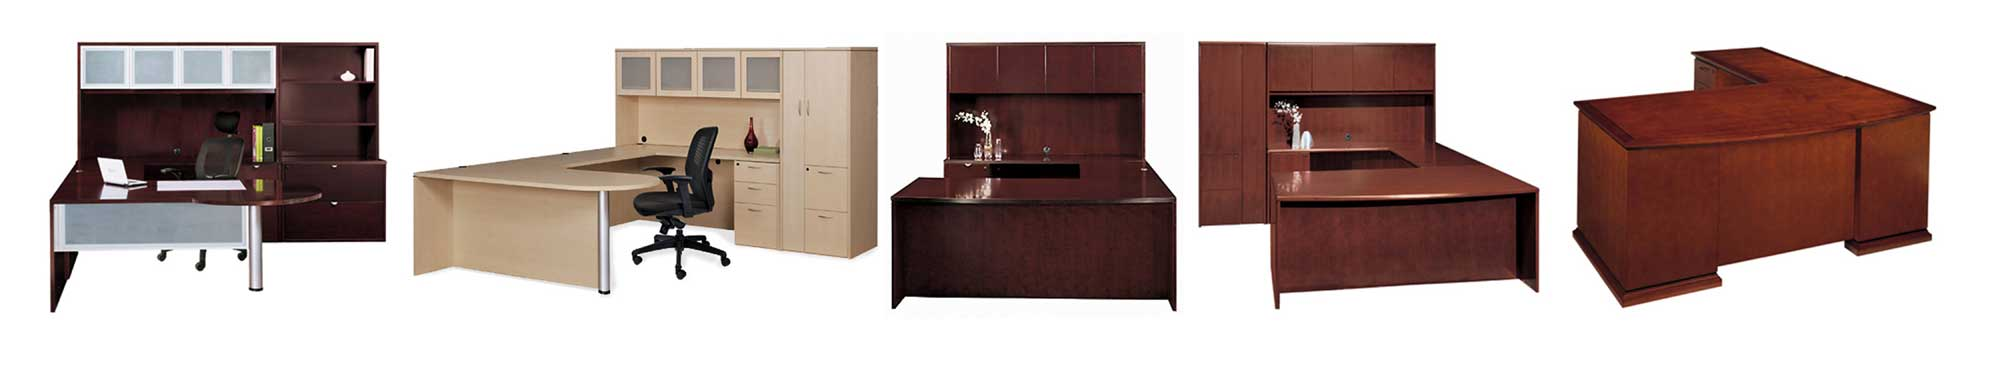 affordable discount office equipment